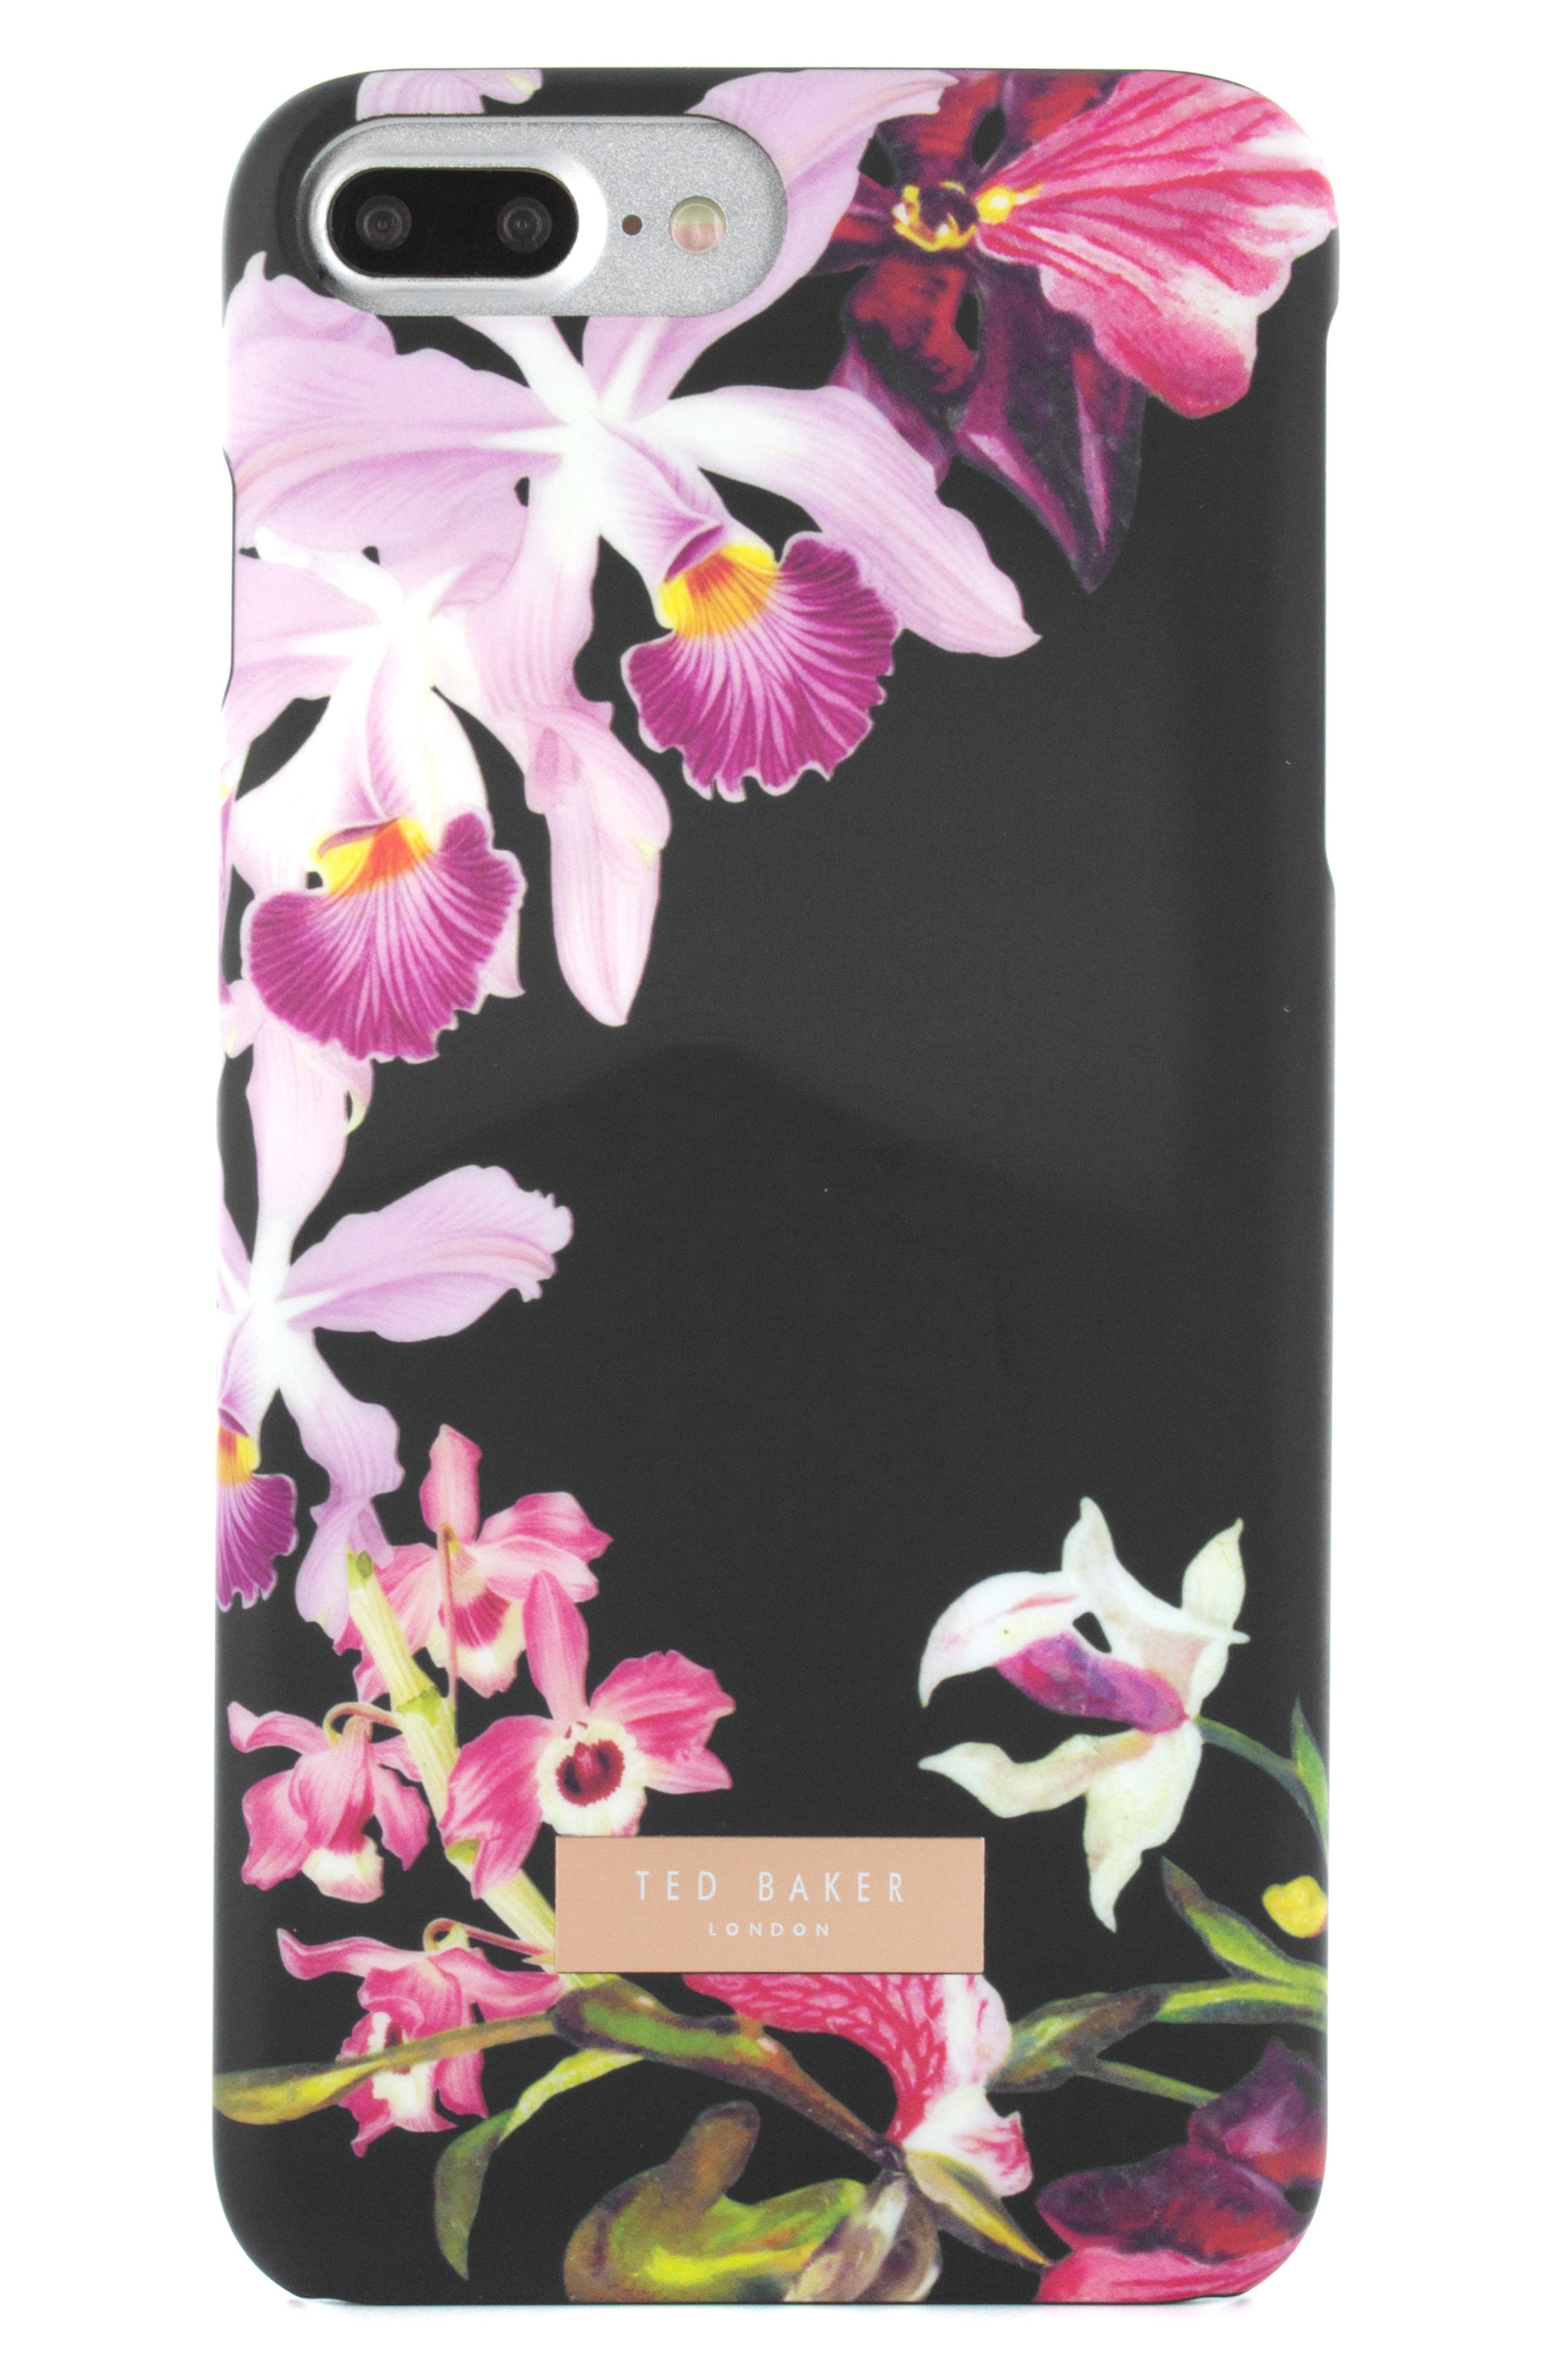 Alternate Image 1 Selected - Ted Baker London Sidra Garden iPhone 6/6s/7/8 Plus Case